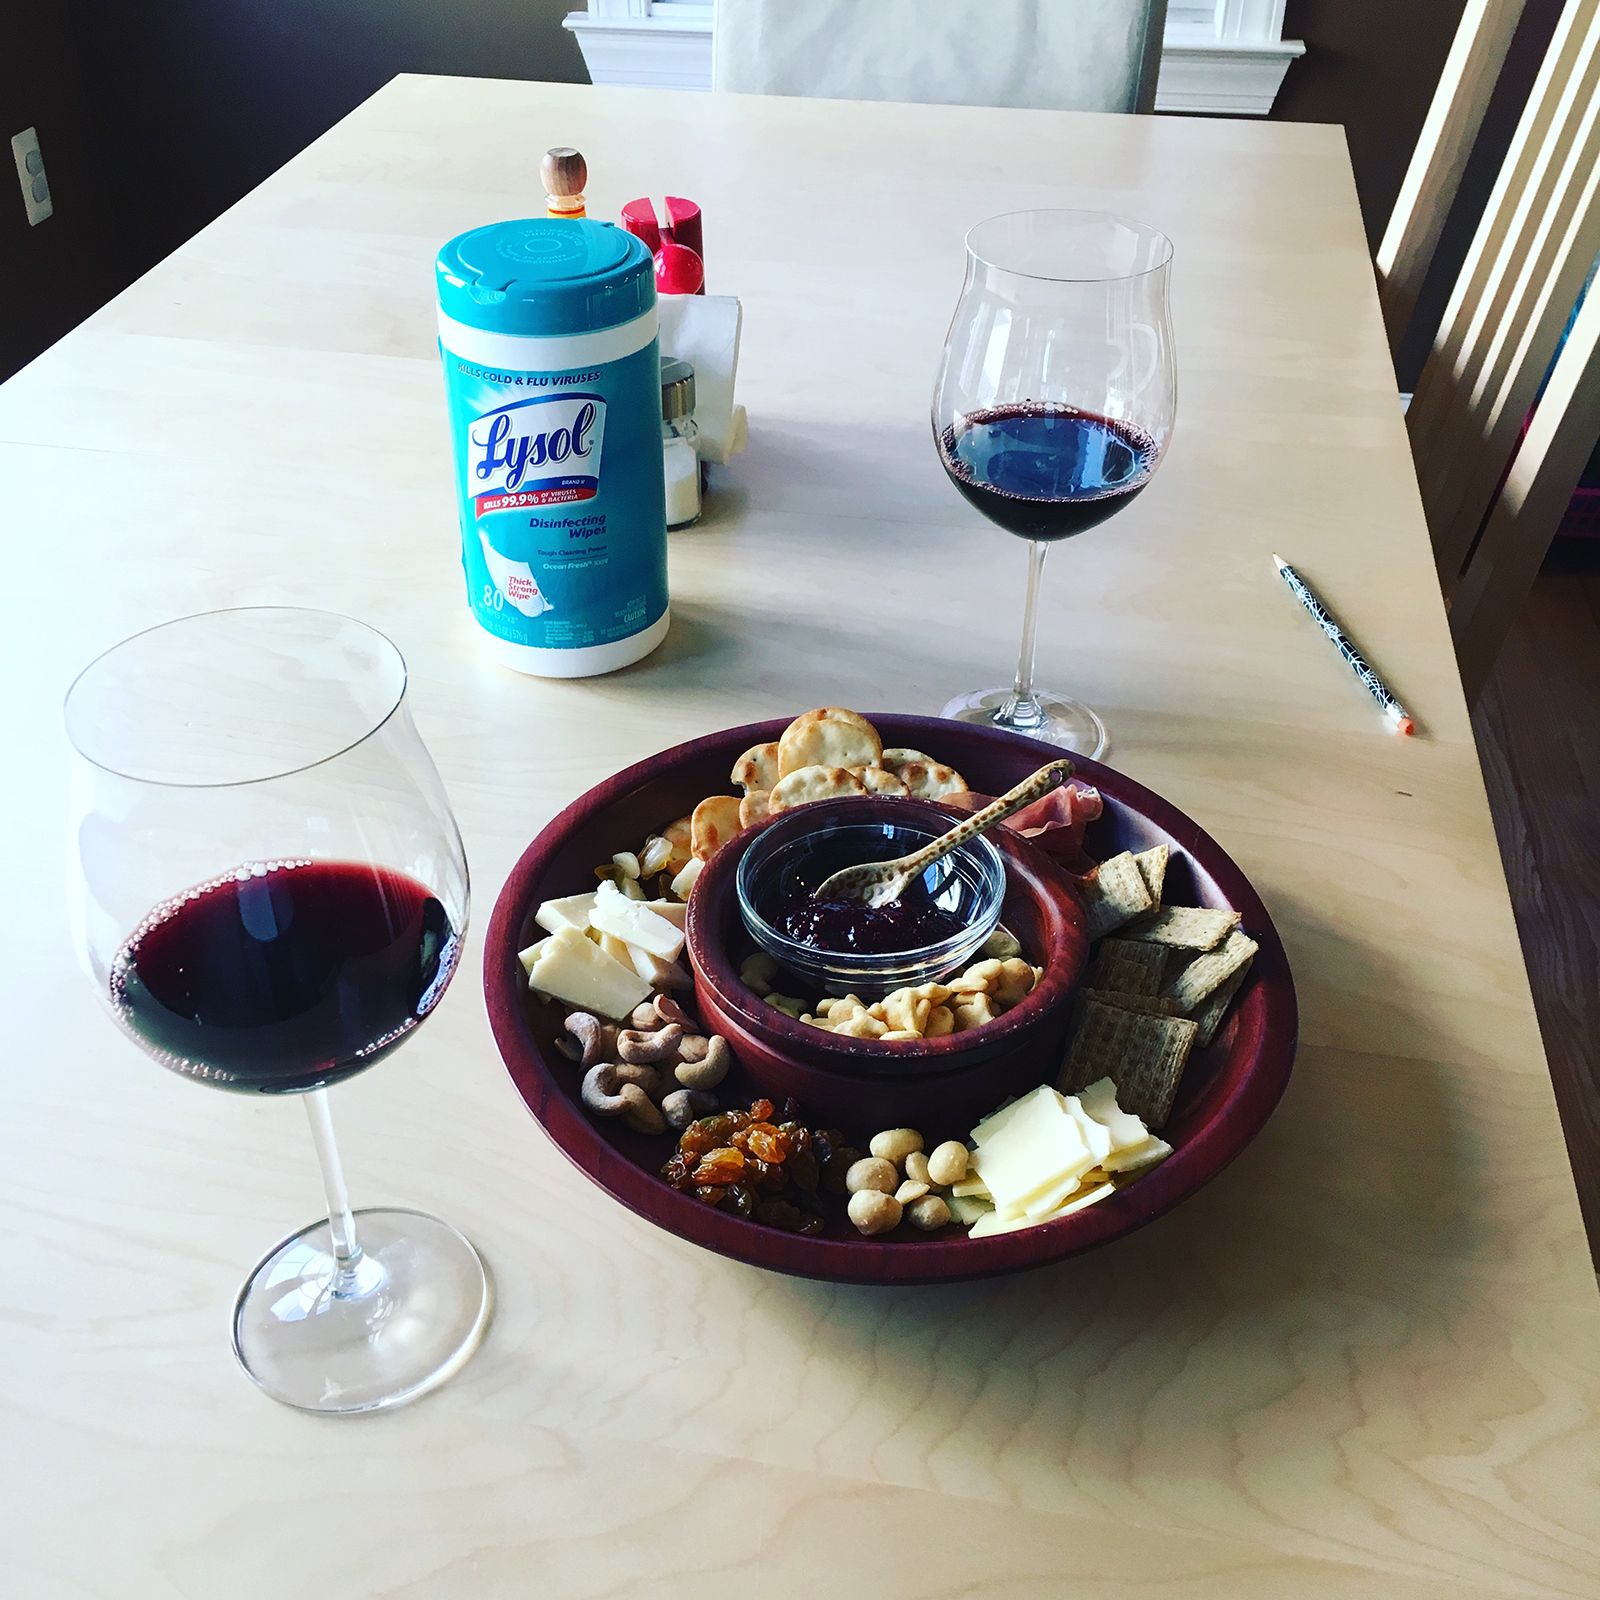 Our new reality: cheese plates, wine and Lysol wipes to keep the house germ free.